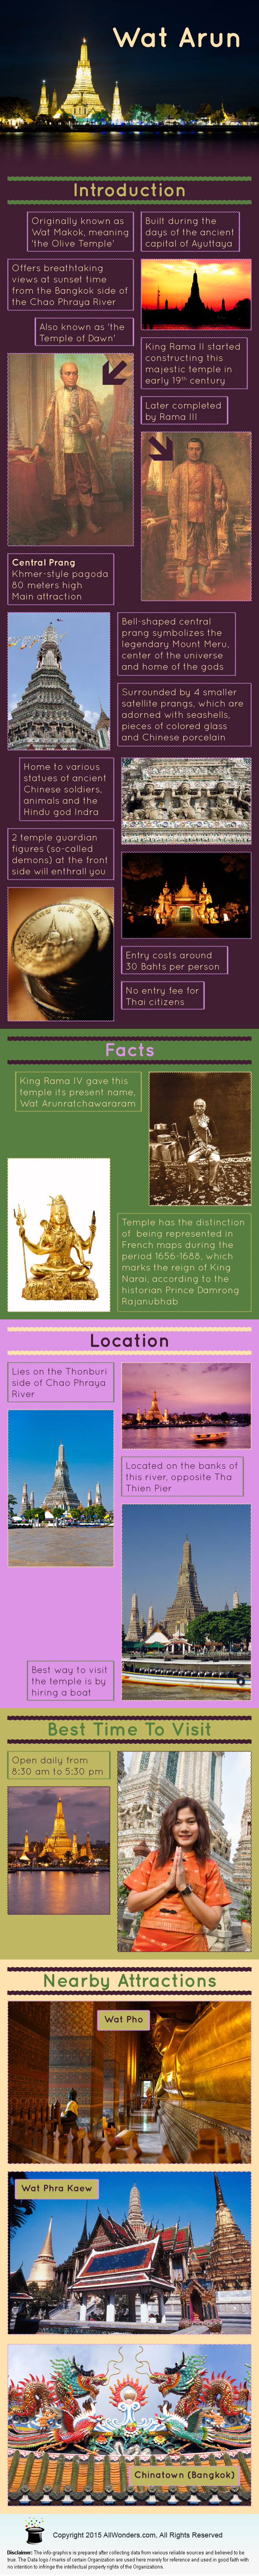 Wat Arun, Thailand - Facts & Infographic